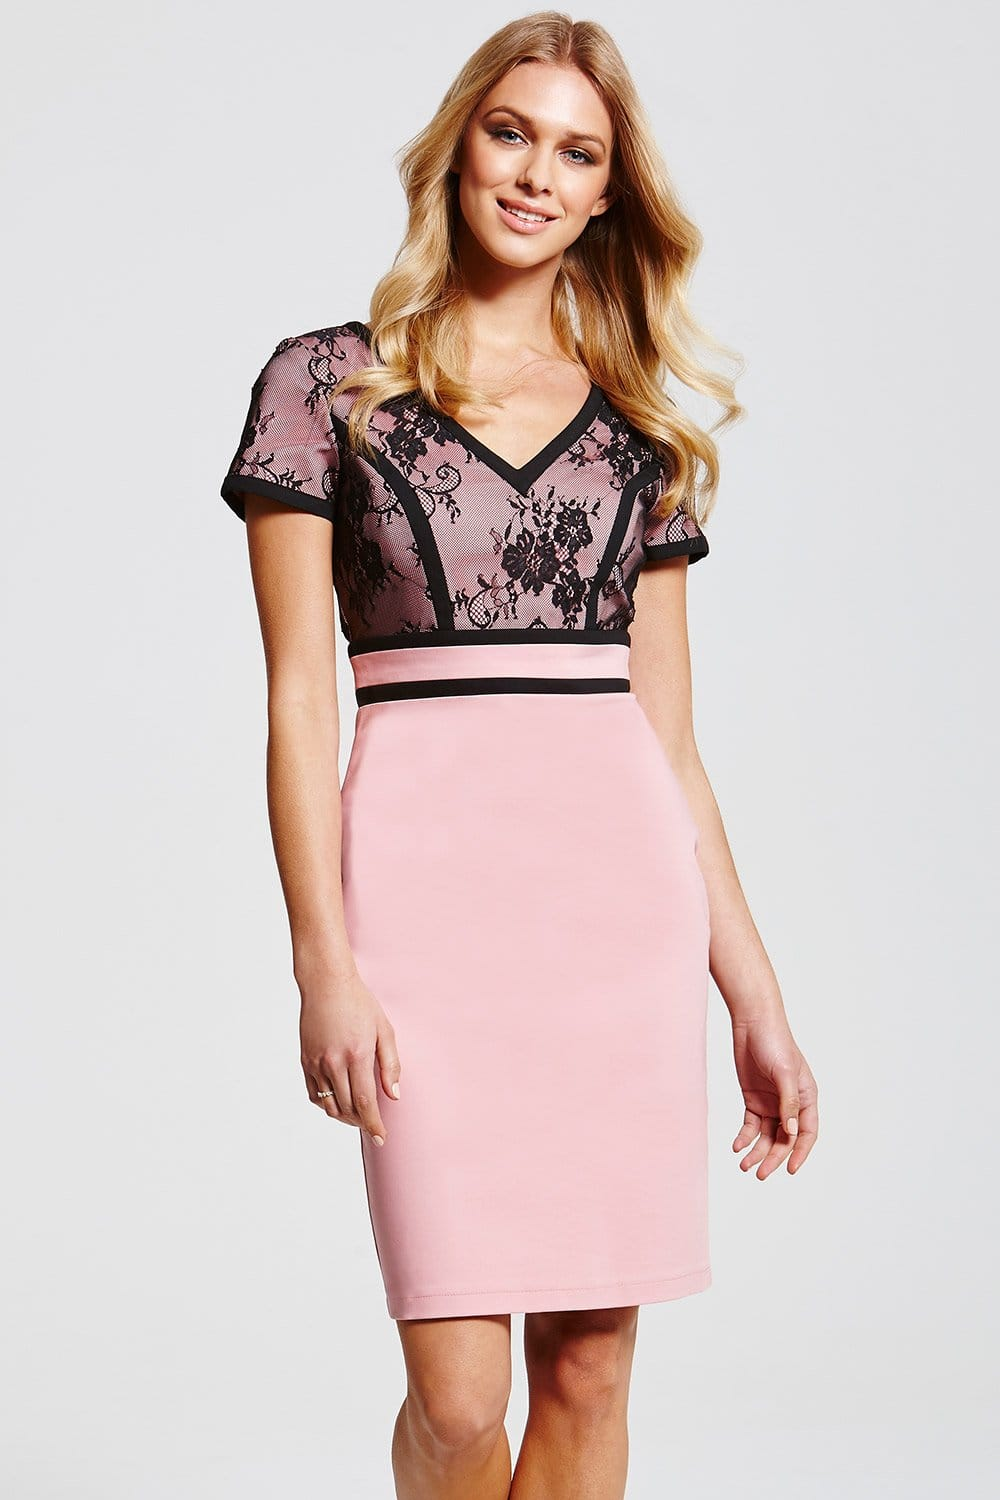 Outlet Paper Dolls Pink And Black Lace Top Dress Outlet